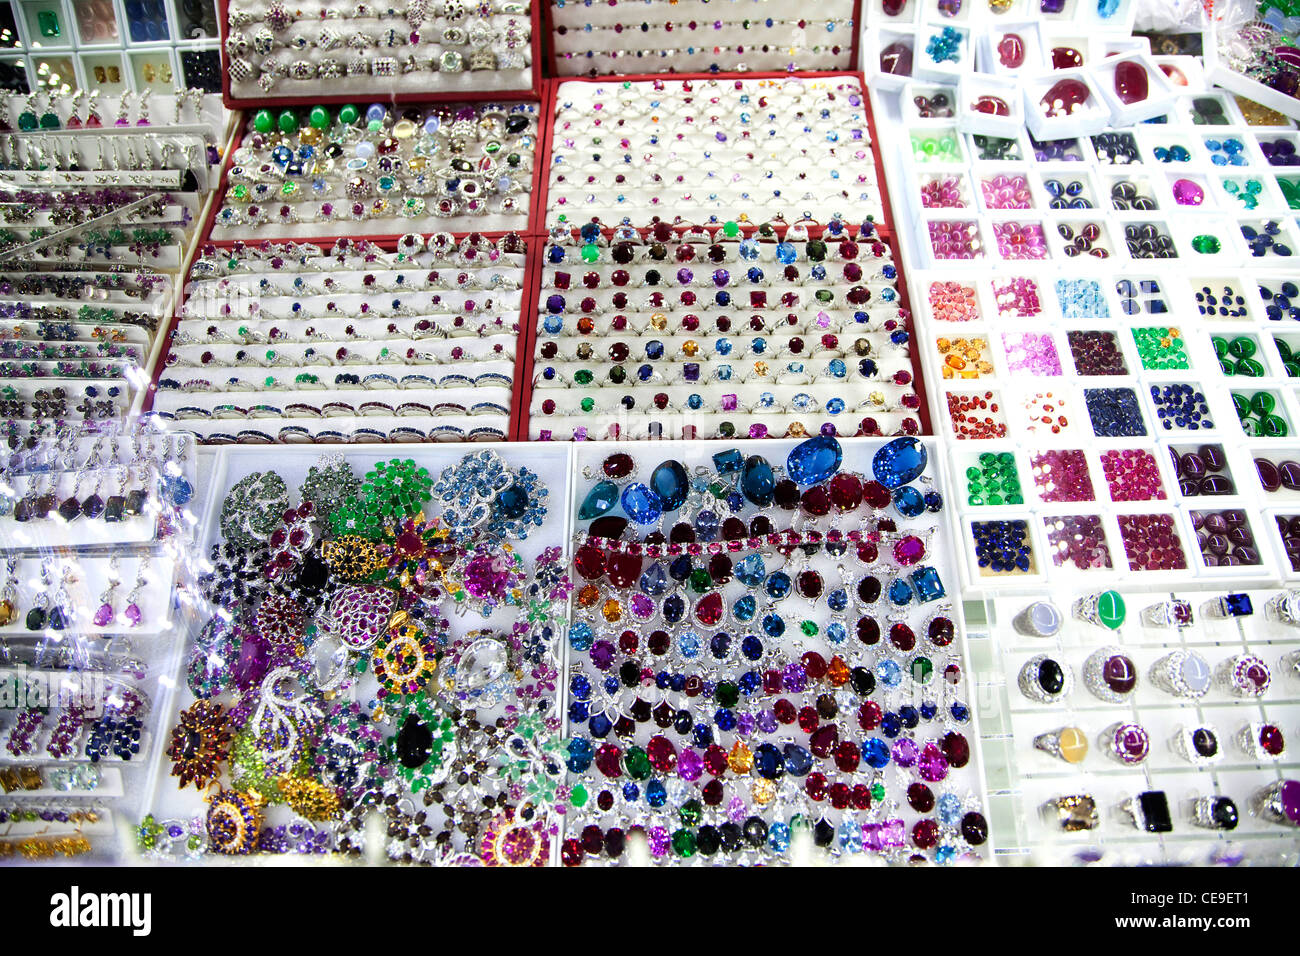 Jewels and gems in jewelry, Central market, Phnom Penh, Cambodia, Asia - Stock Image